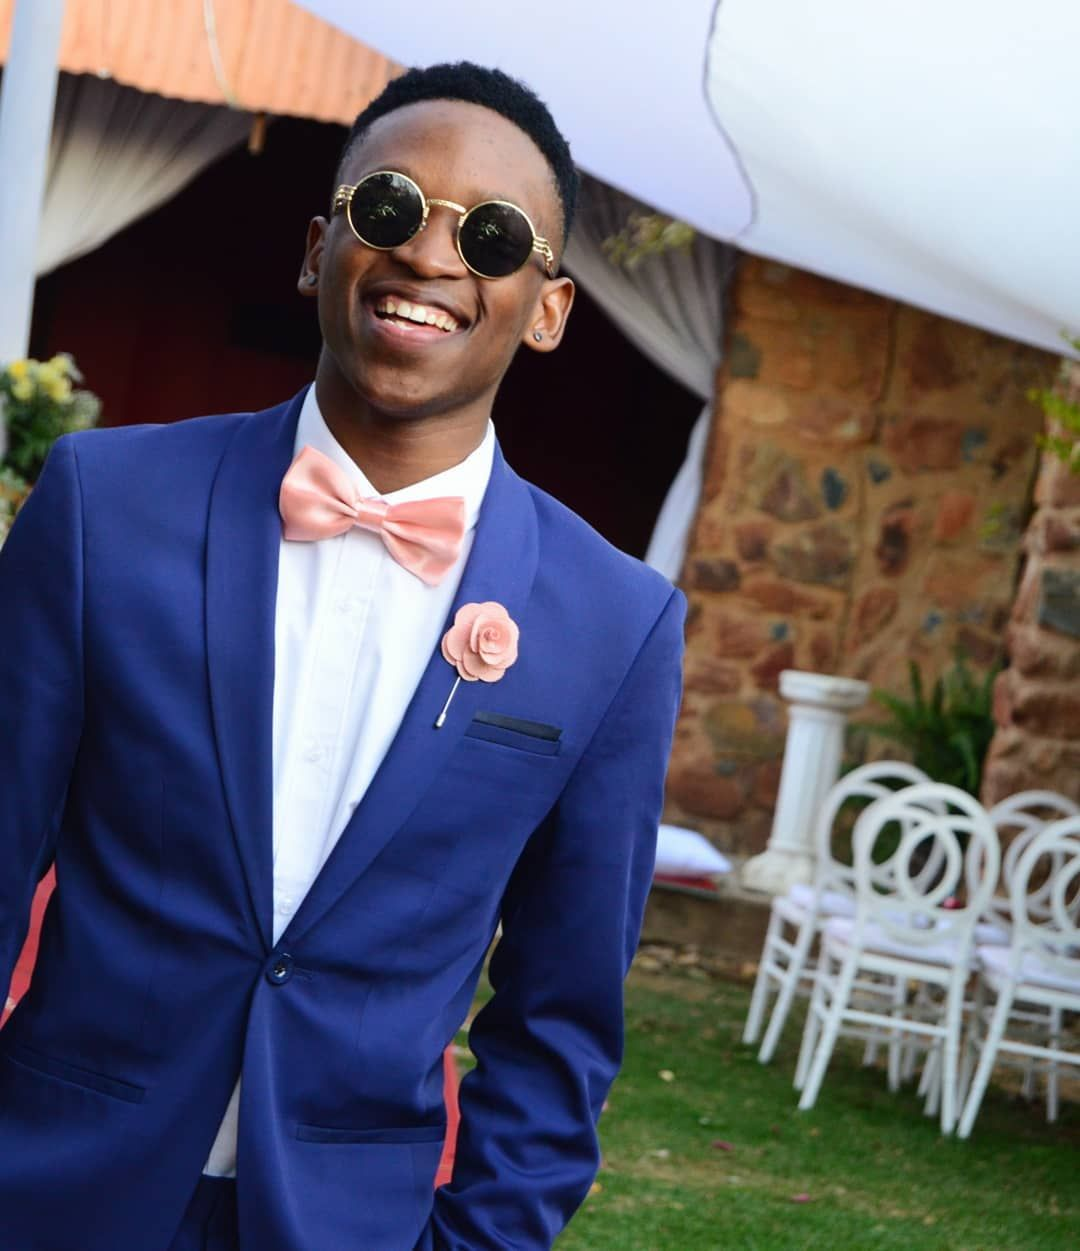 A Beautiful Day African Boy The Canvas Co Suited Groomsman Wedding Dancing Dancer Dance Navy Blue Suit Men Wedding Outfit Men Blue Tuxedos